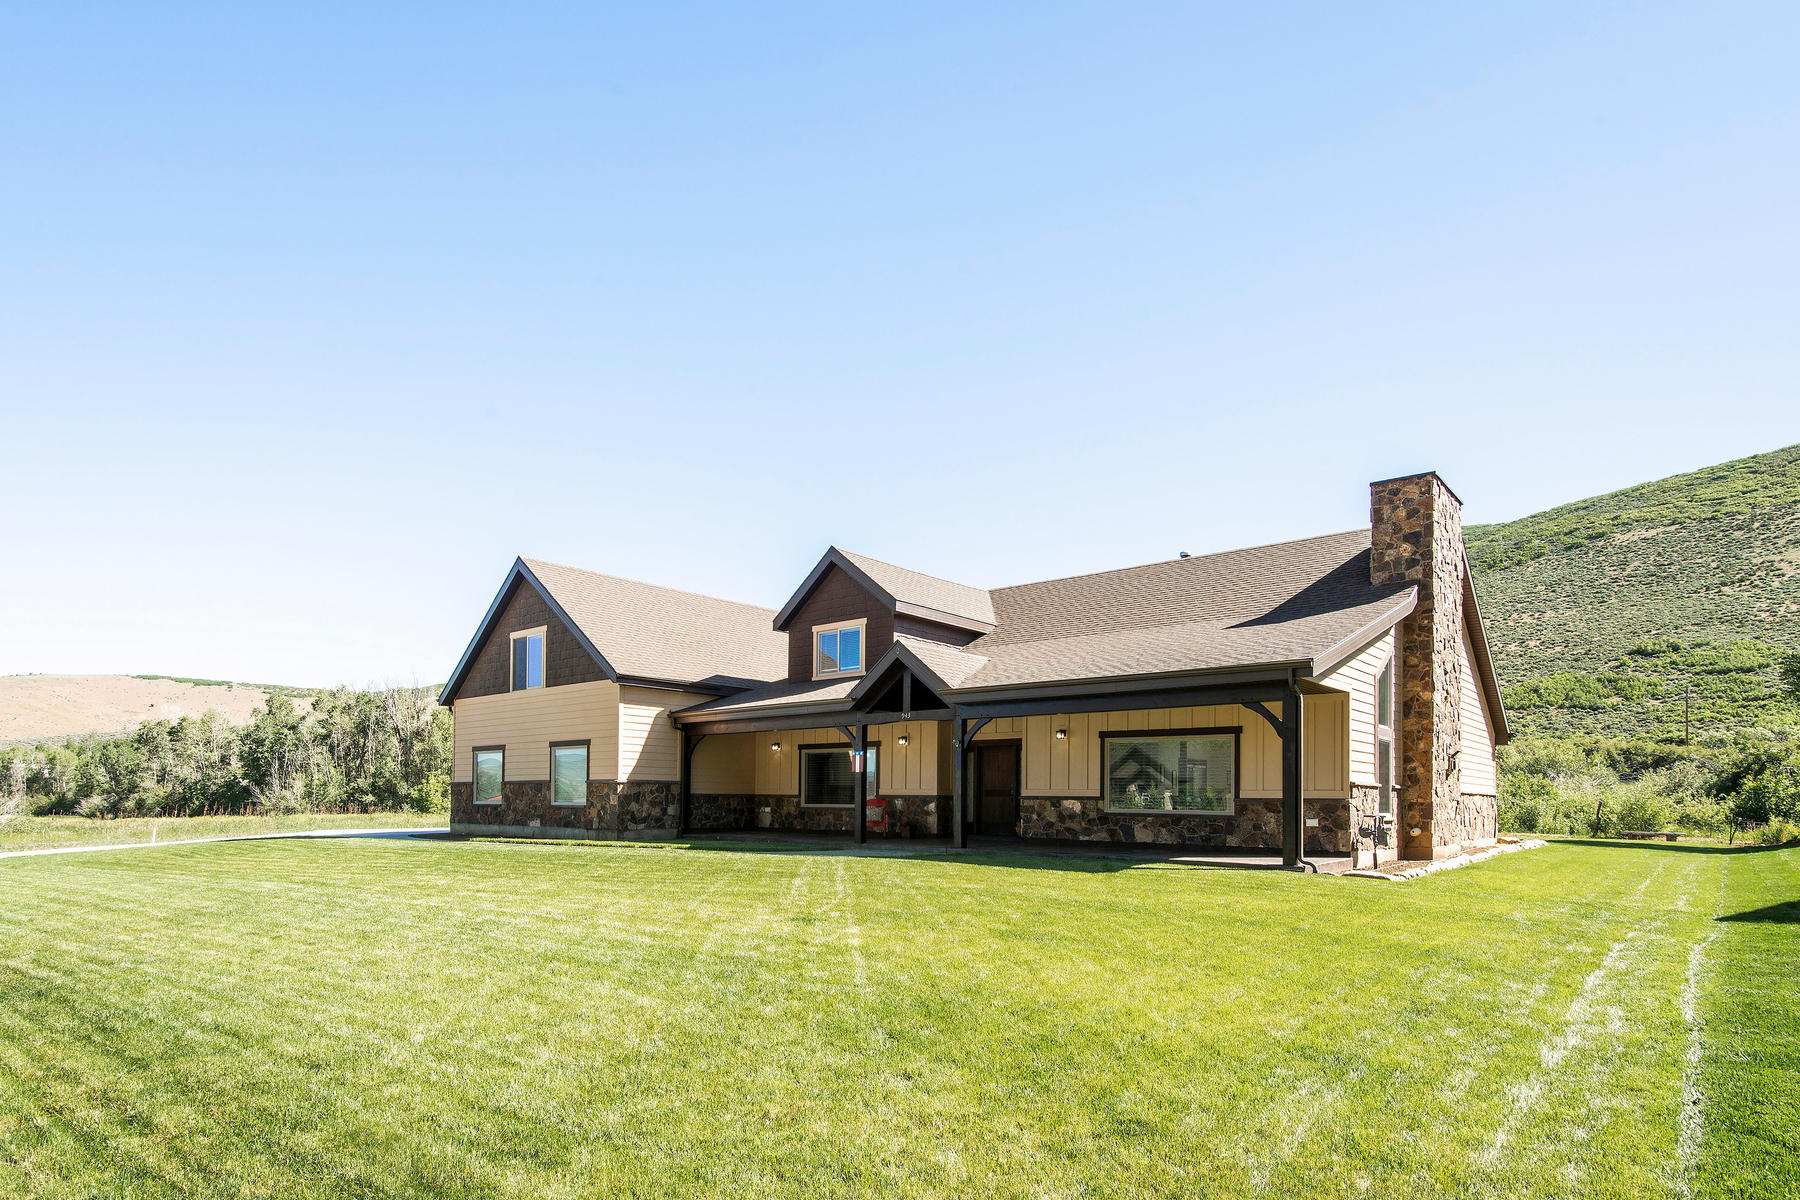 Single Family Homes for Active at A Personal Getaway, Every Day 943 East 350 South Kamas, Utah 84036 United States